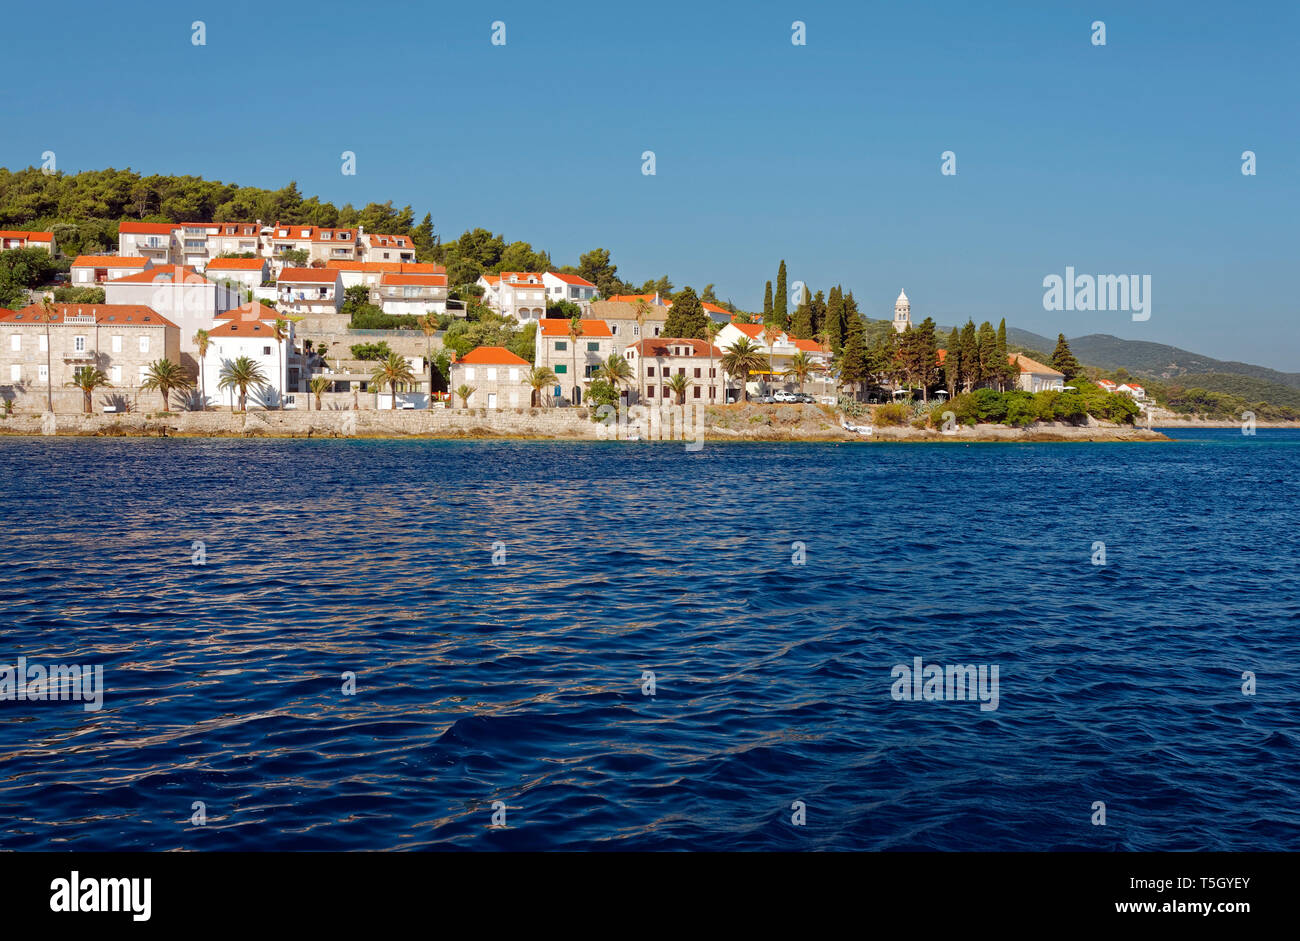 15th century city viewed from water; stone buildings, red roofs, Adriatic Sea; Korcula Town; Croatia; Europe; summer, horizontal - Stock Image